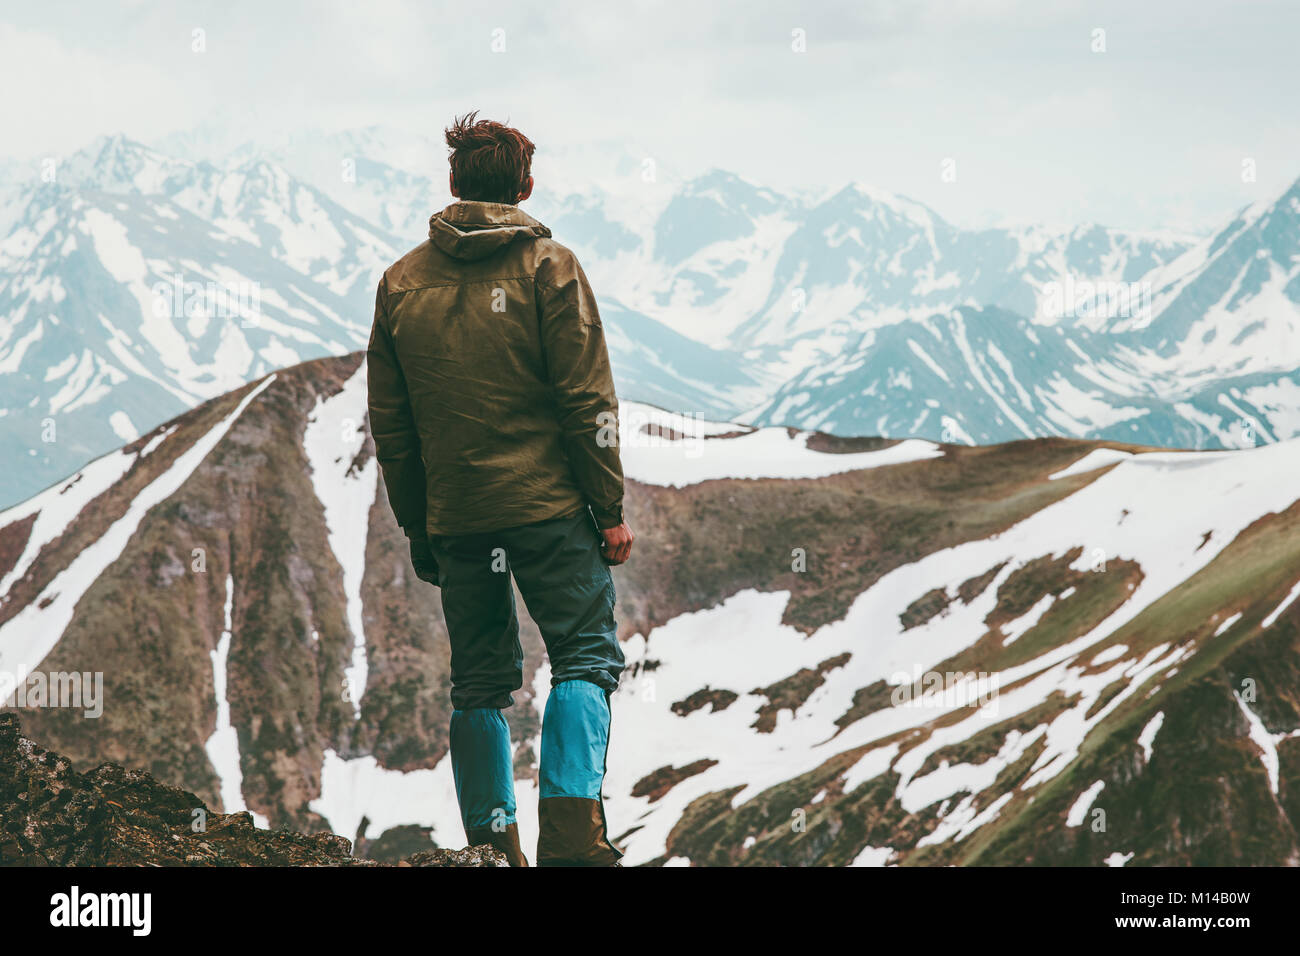 Climber Man reached mountain summit Travel Lifestyle concept traveler enjoying  landscape outdoor activity vacations - Stock Image